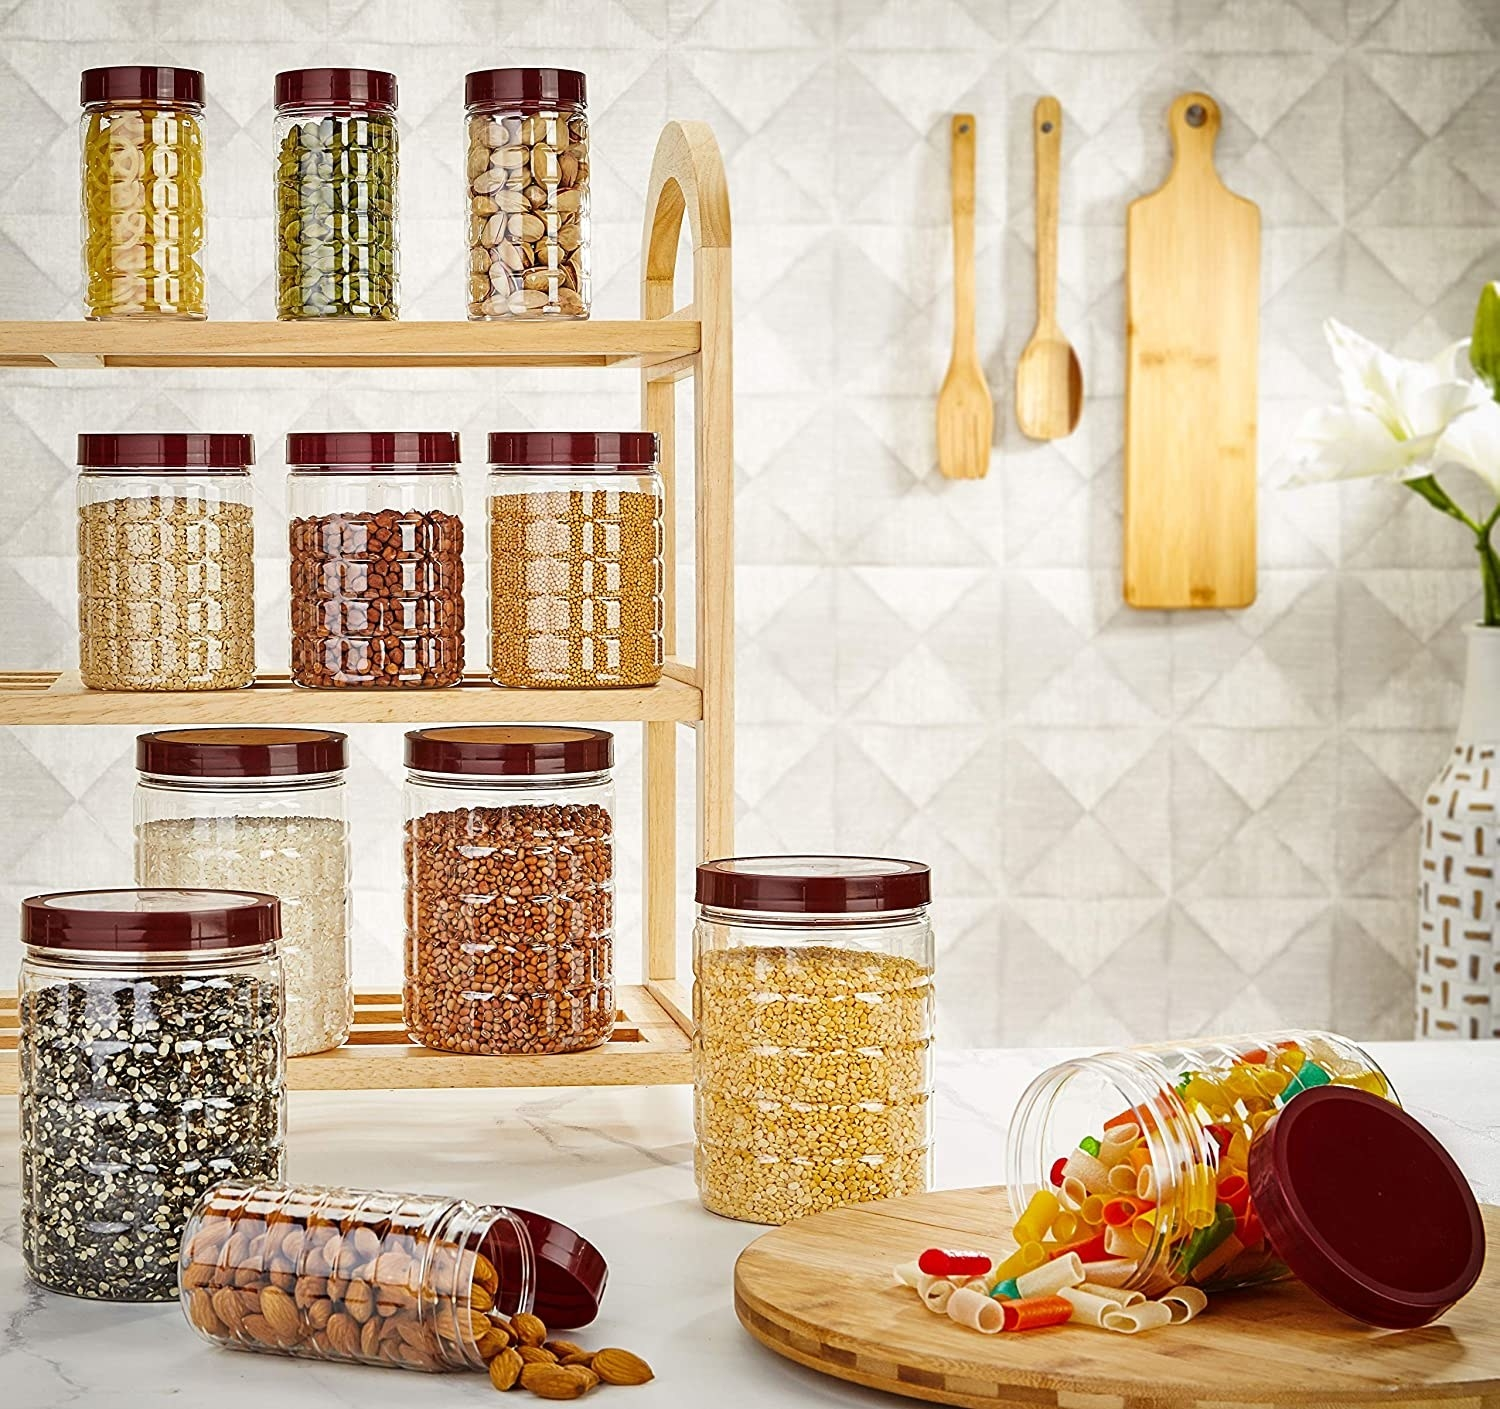 A set of airtight containers with food items in them